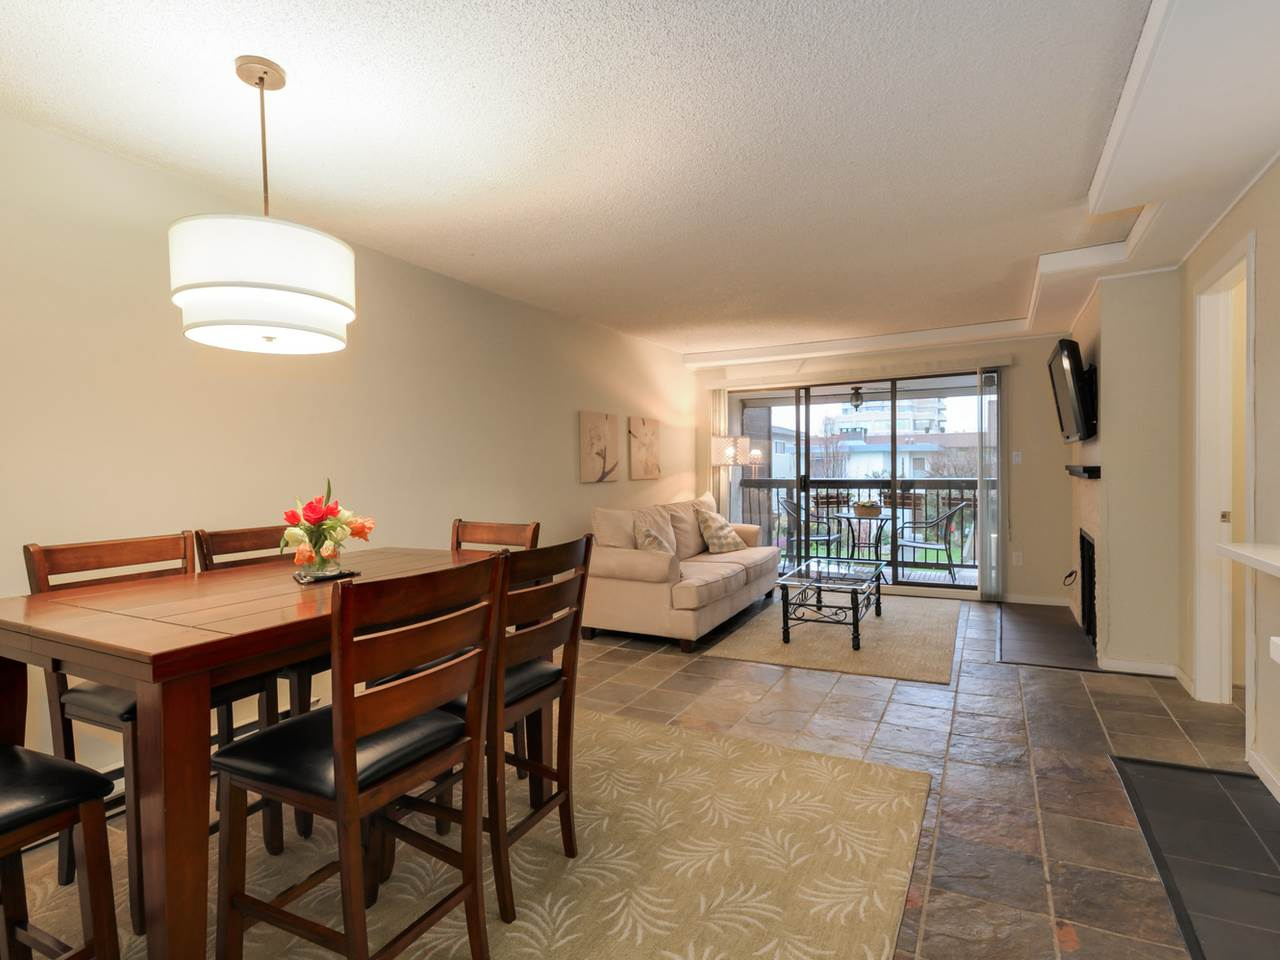 "Photo 5: 202 1352 W 10TH Avenue in Vancouver: Fairview VW Condo for sale in ""Tell Manor"" (Vancouver West)  : MLS® # R2035626"